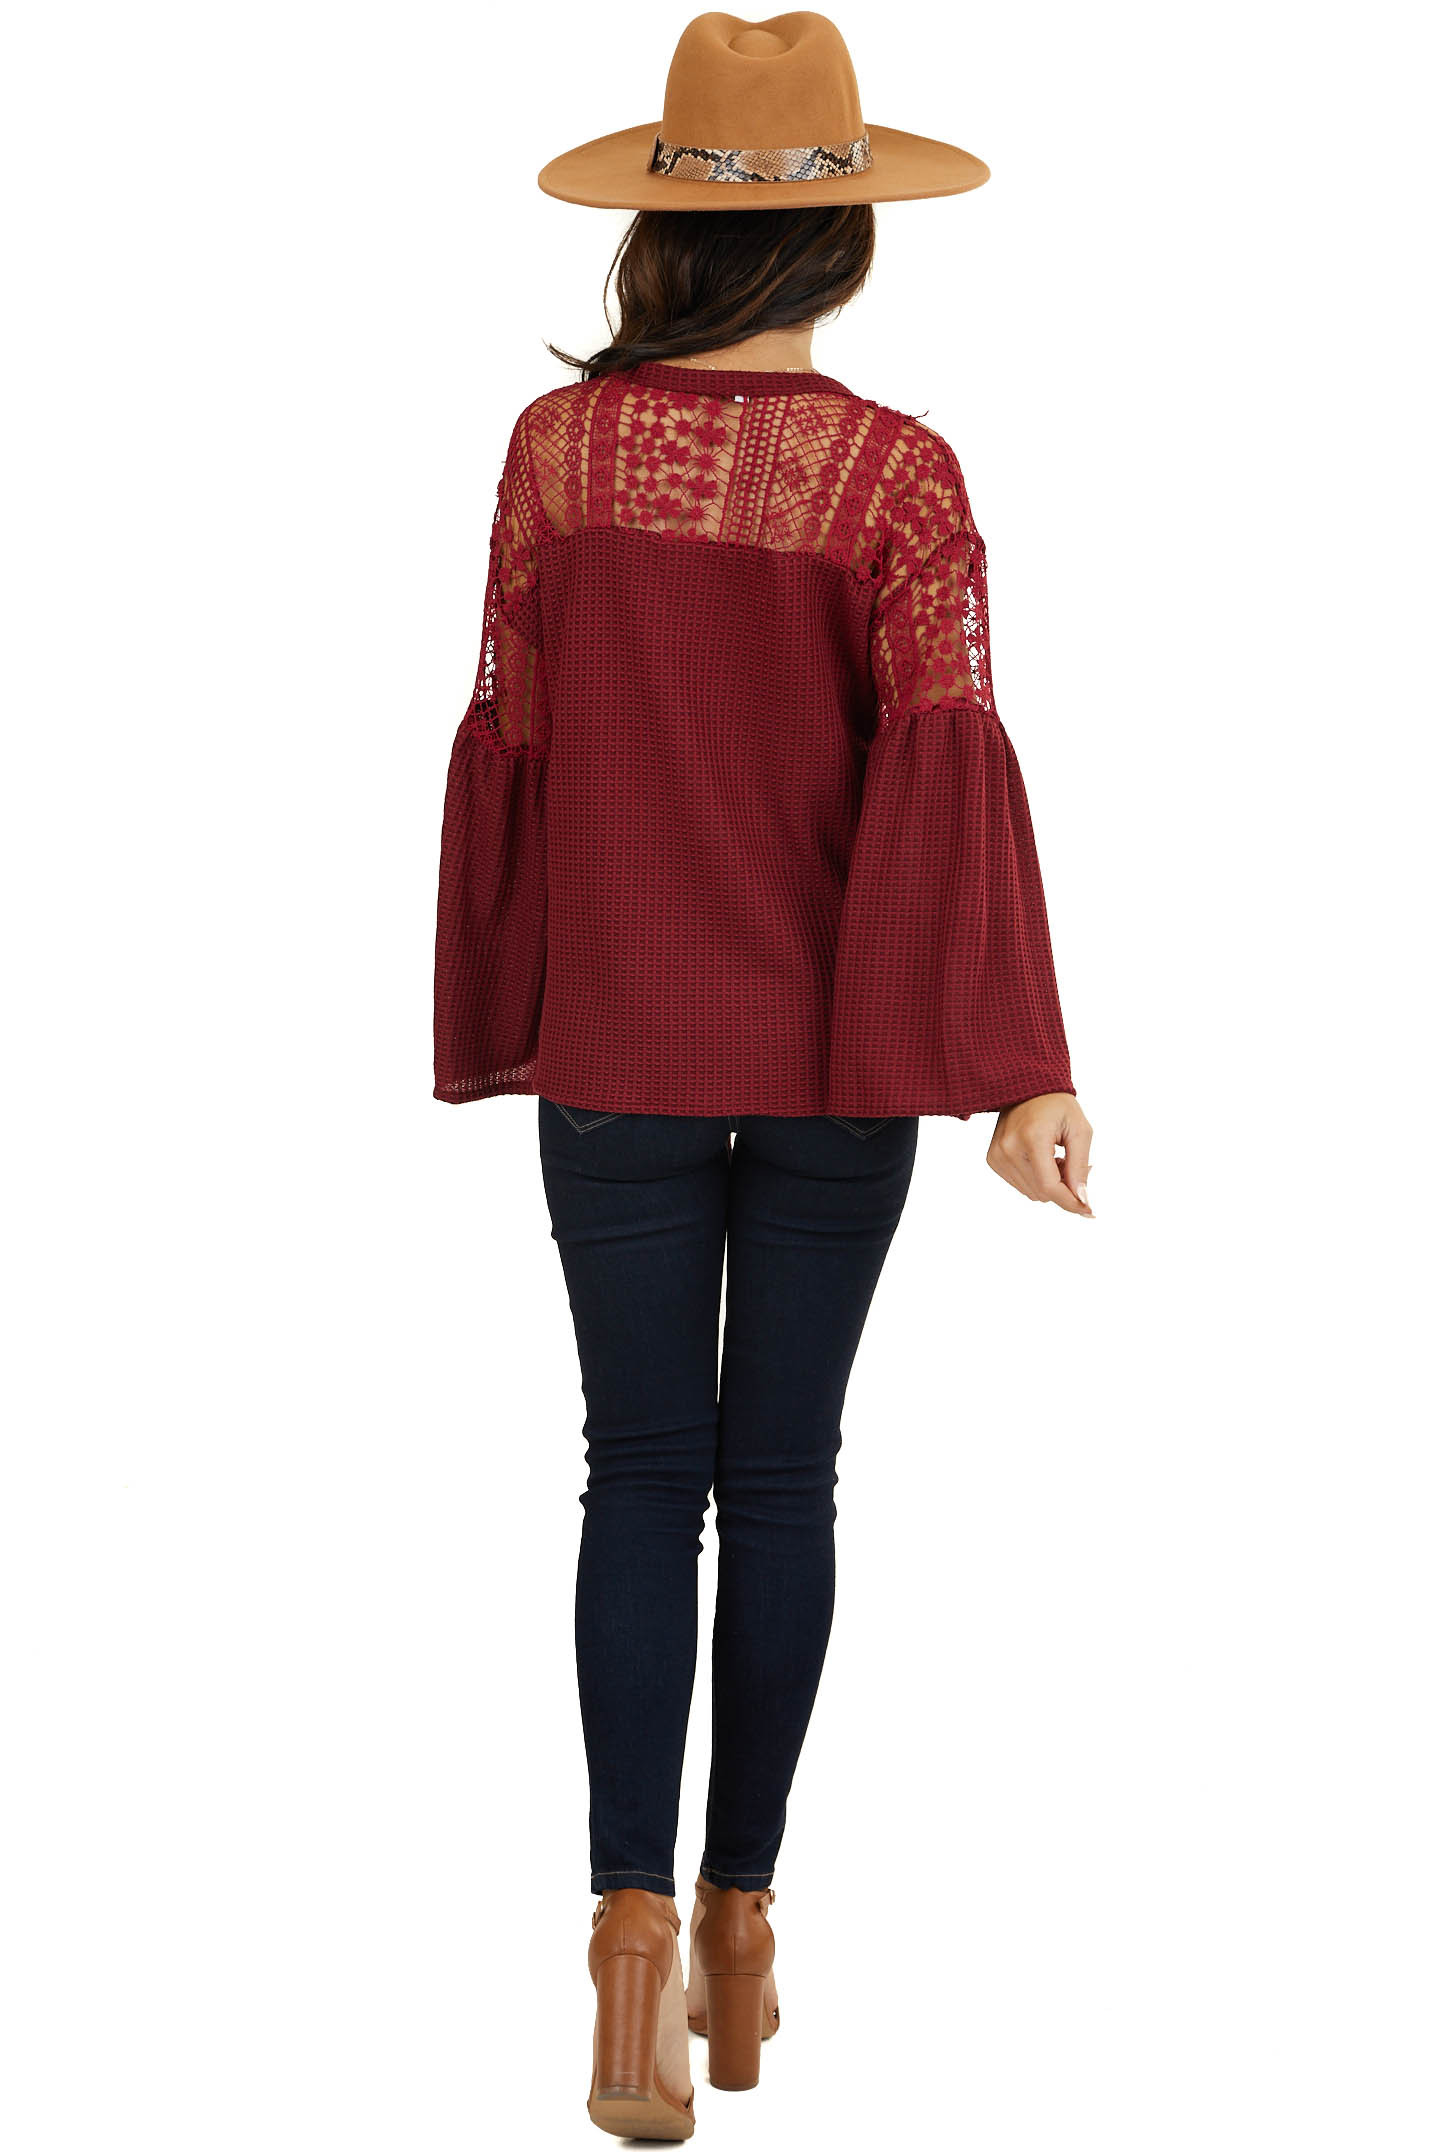 Wine Waffle Knit Top with Long Sleeves and Lace Contrast